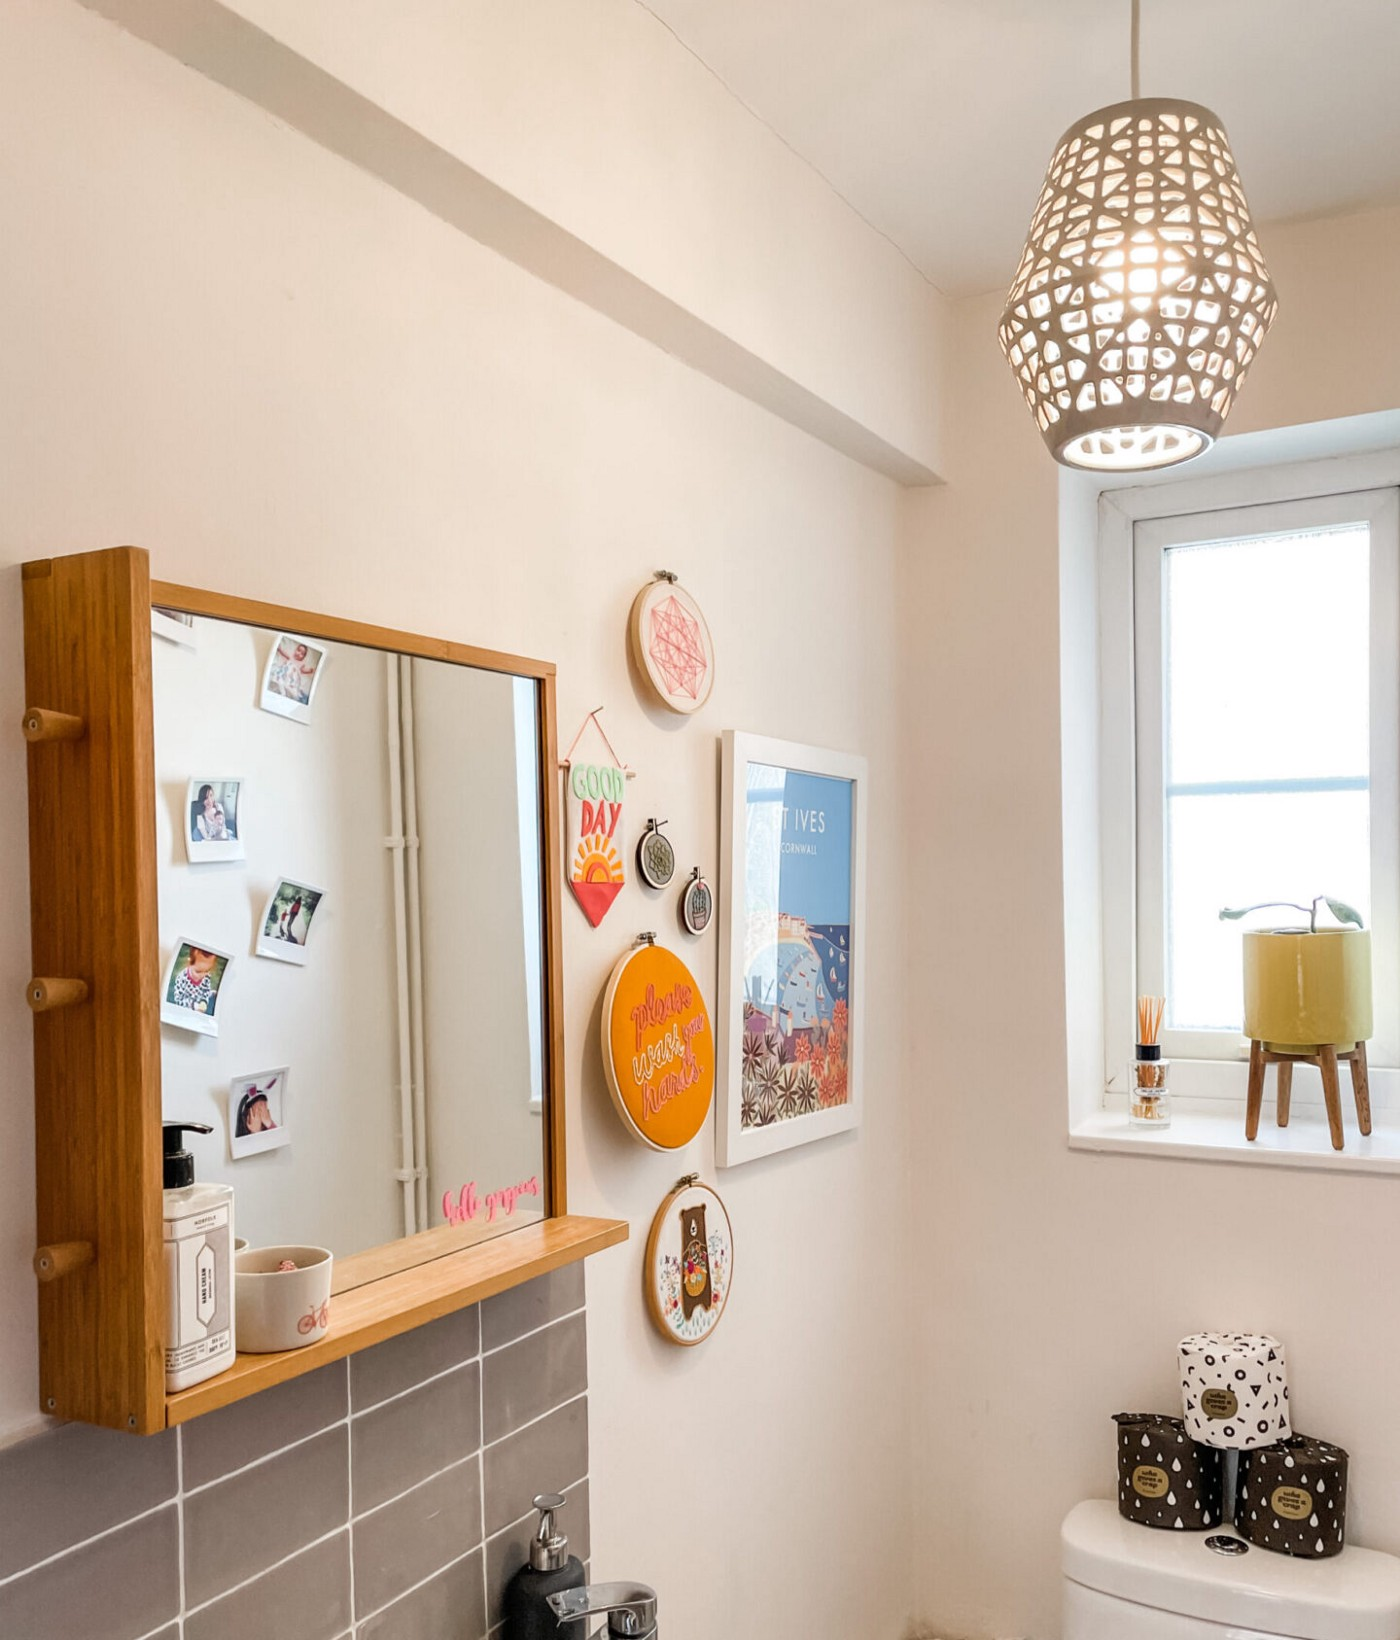 Cloakroom with a bamboo-framed mirror and shelf above a sink tile tiled with grey tiles, lit up by a new eco-friendly LED bulb in a grey shade. There is a collection of brightly coloured embroideries and a vintage-style art print of St Ives on the wall, and a window with a yellow plant stand on the windowsill